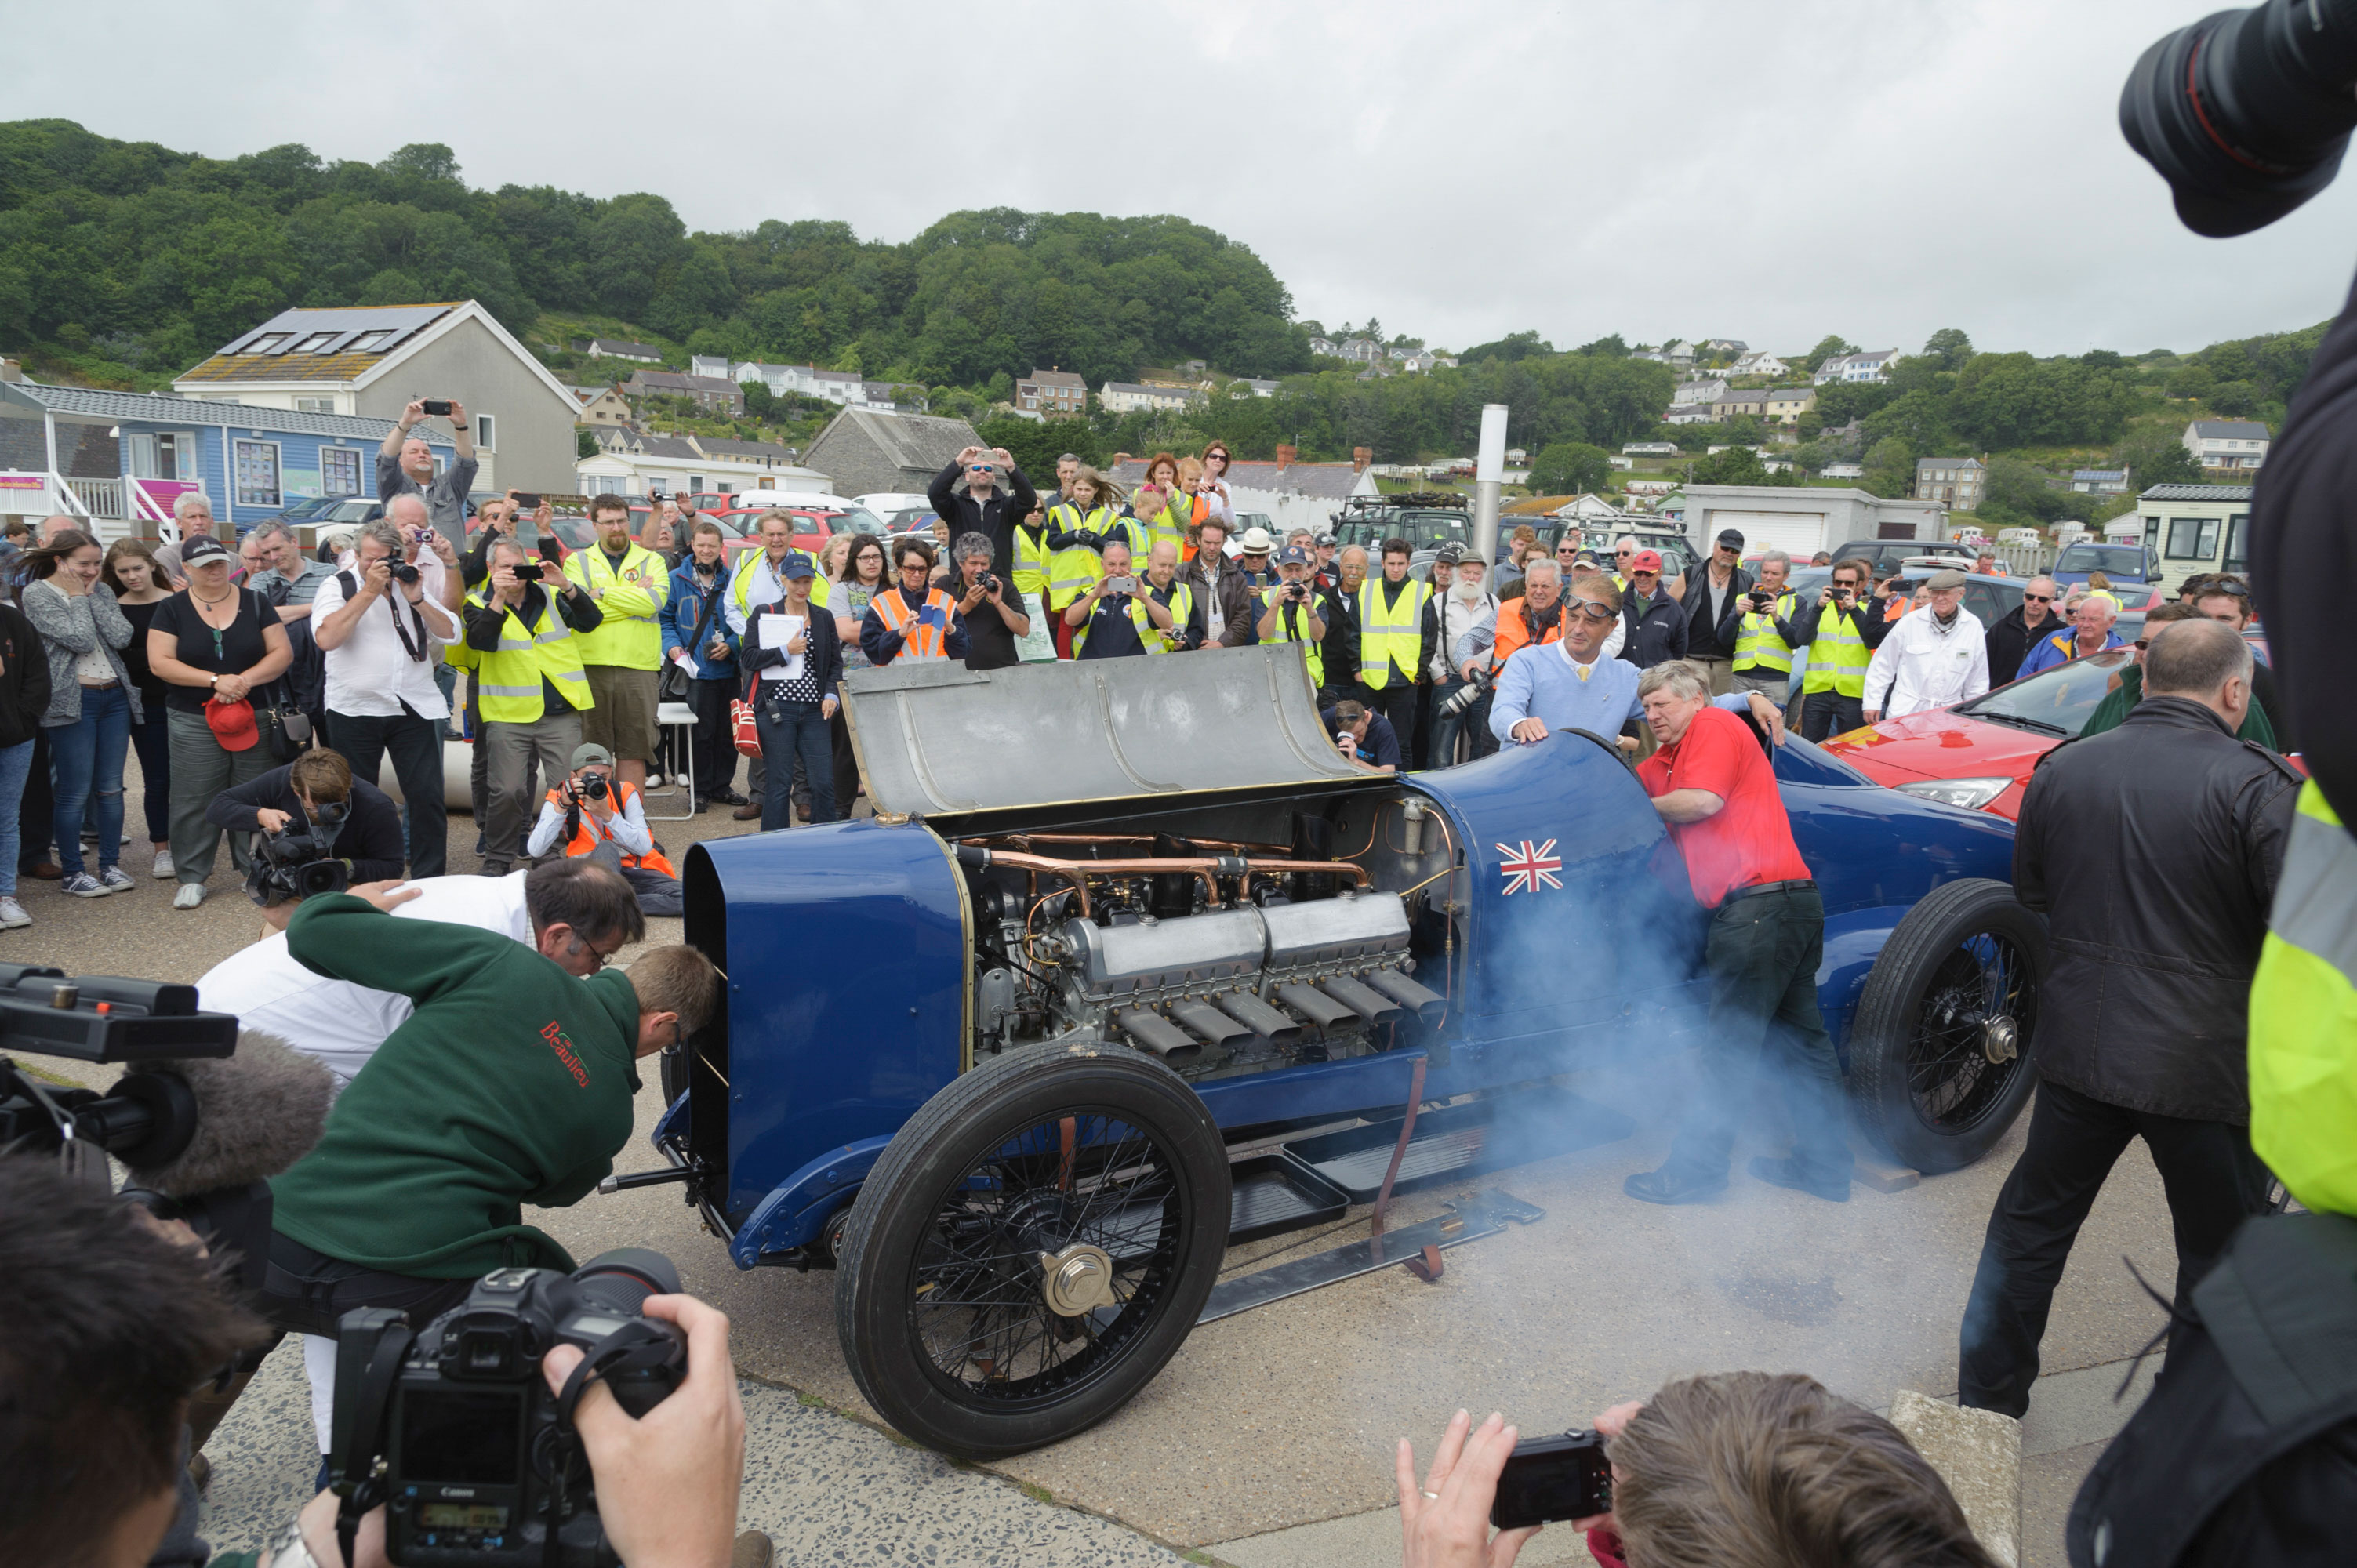 A crowd of people surround the Sunbeam 350hp as it is started up at Pendine